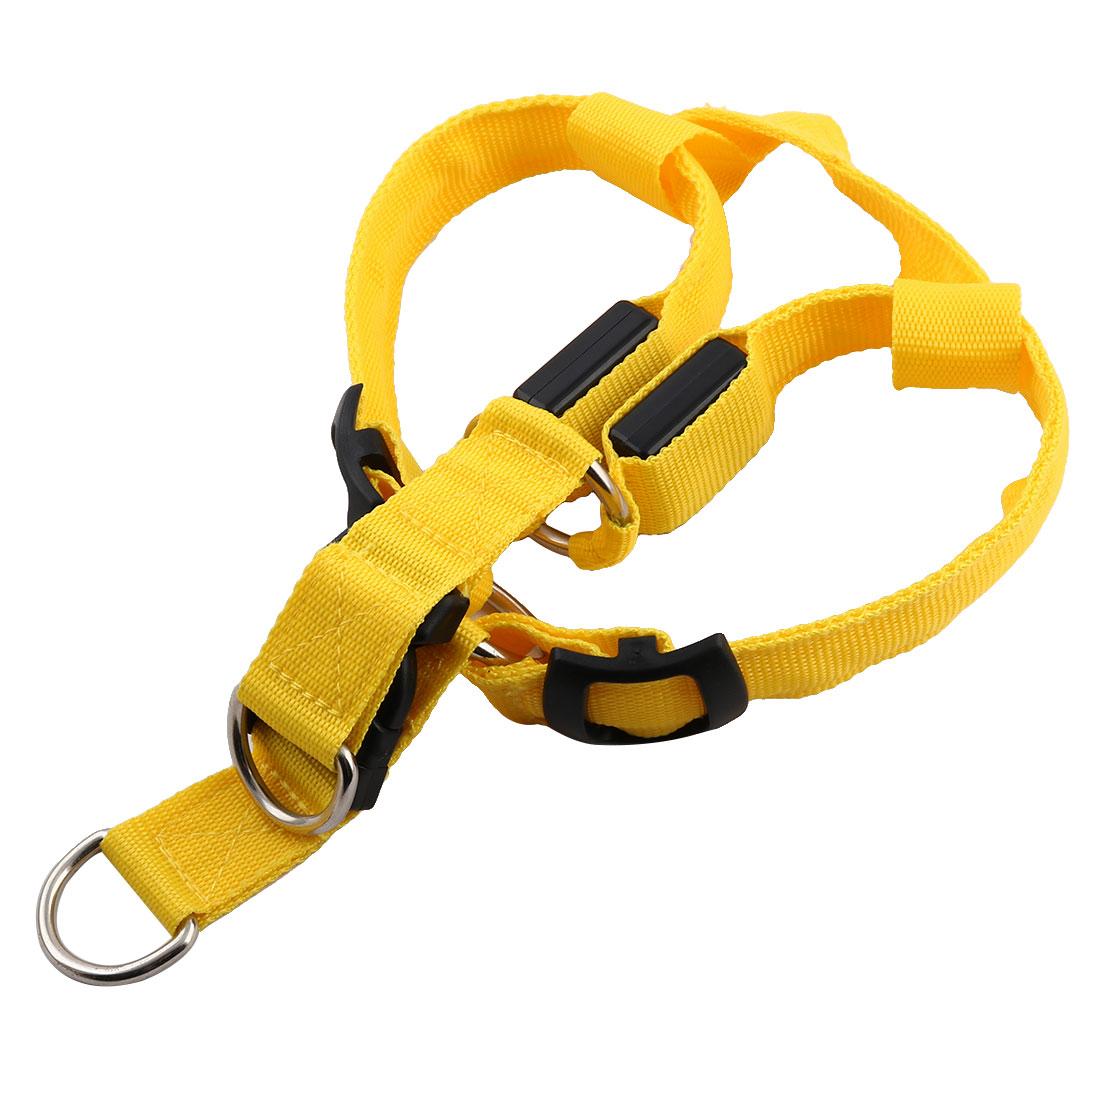 Pet Dog Nylon LED Flashing Light Night Safety Adjustable Chest Strap Yellow